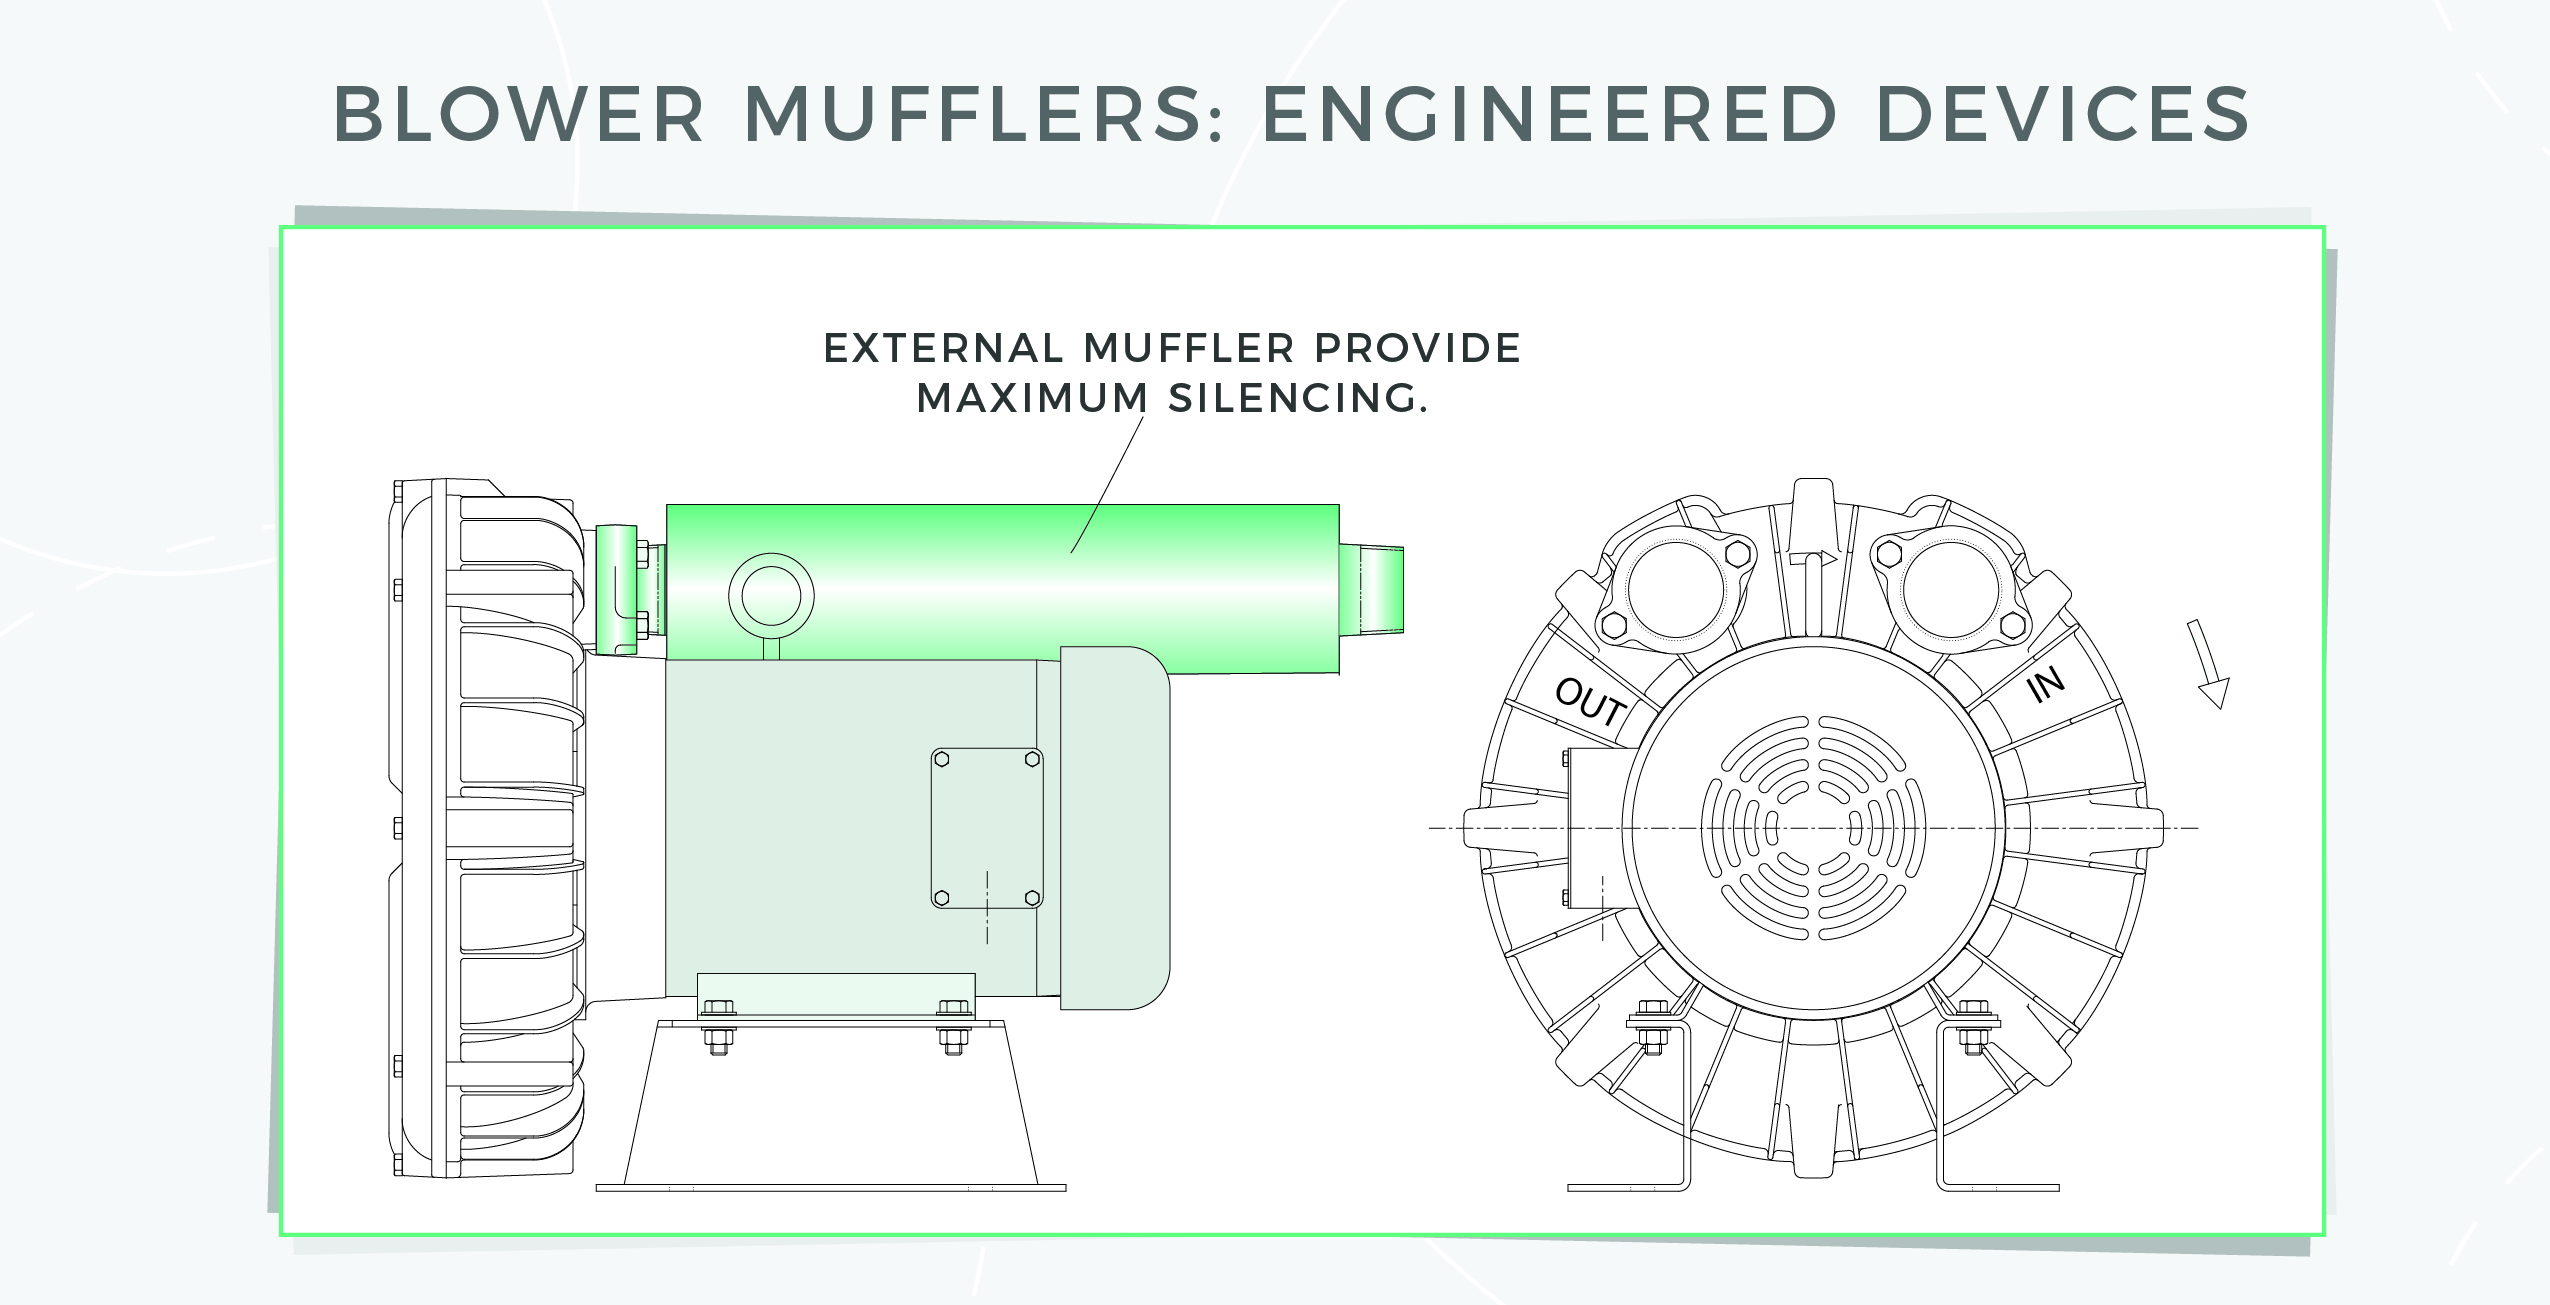 blower mufflers : engineered devices image